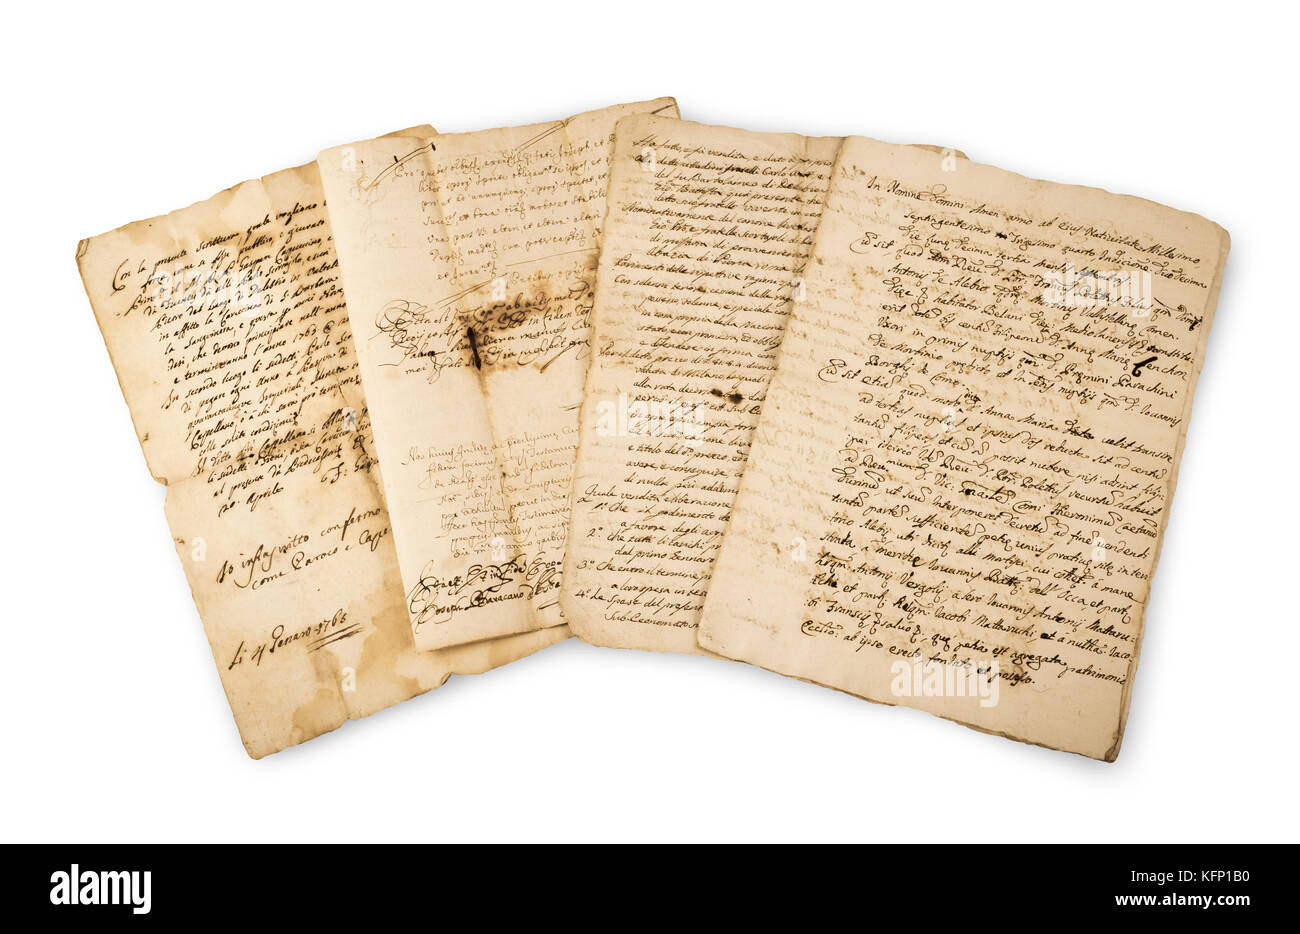 Pile of olds vintage manuscripts isolated on white - Stock Image